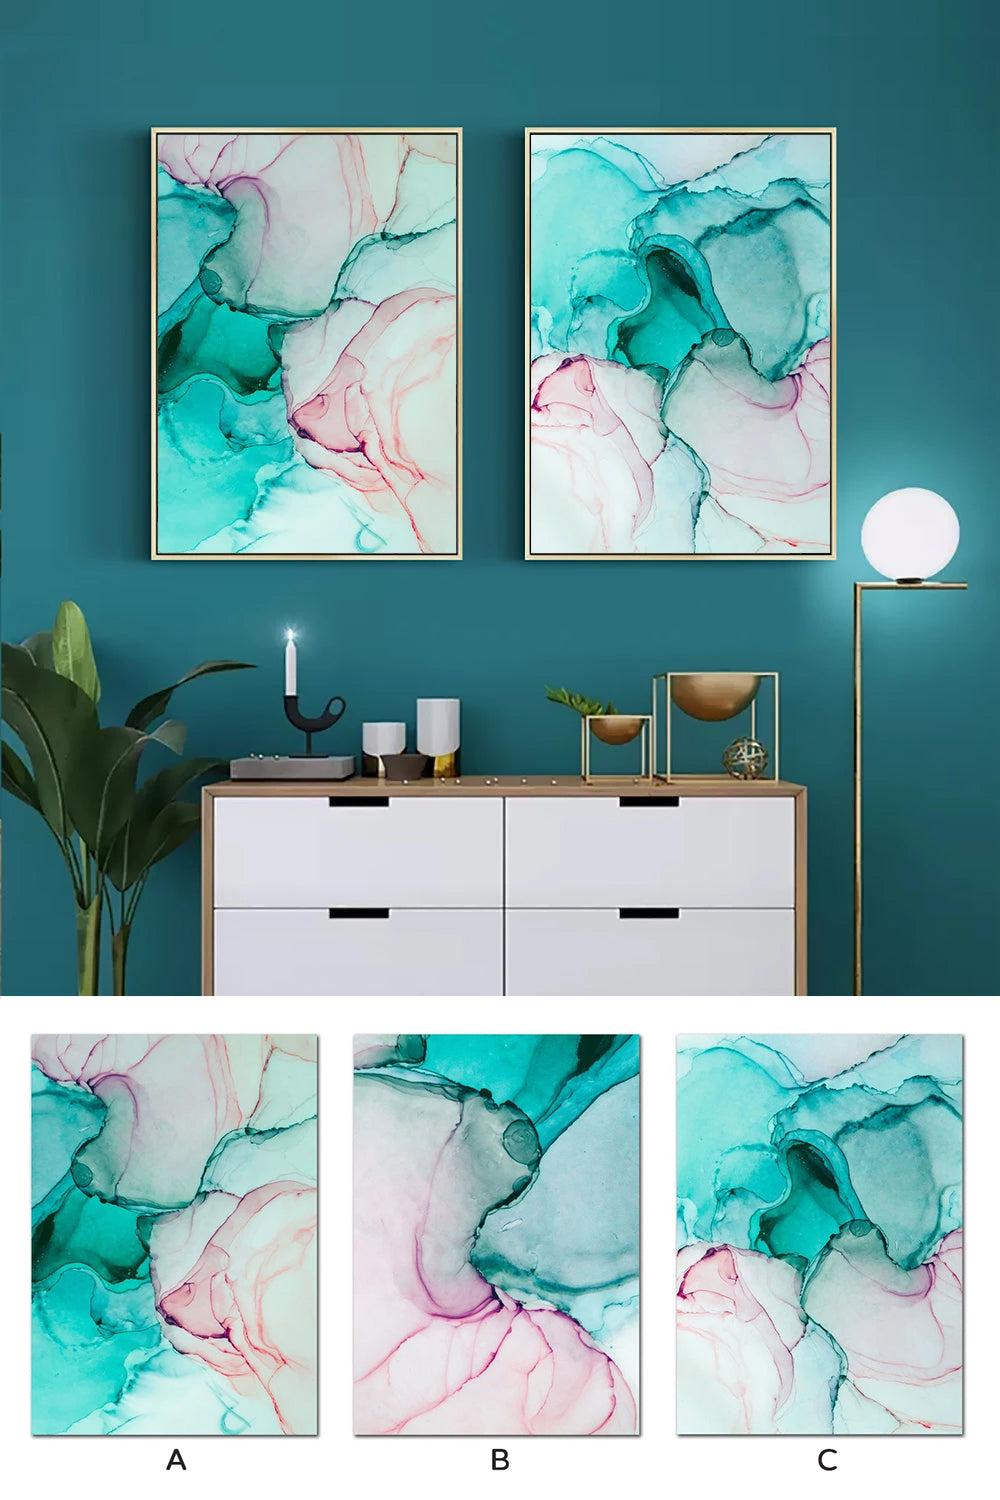 Abstract Shades Of Green Pink Marble Design Wall Art Fine Art Canvas Prints Fashionable Pictures For Living Room Bedroom Nordic Style Home Interior Decor